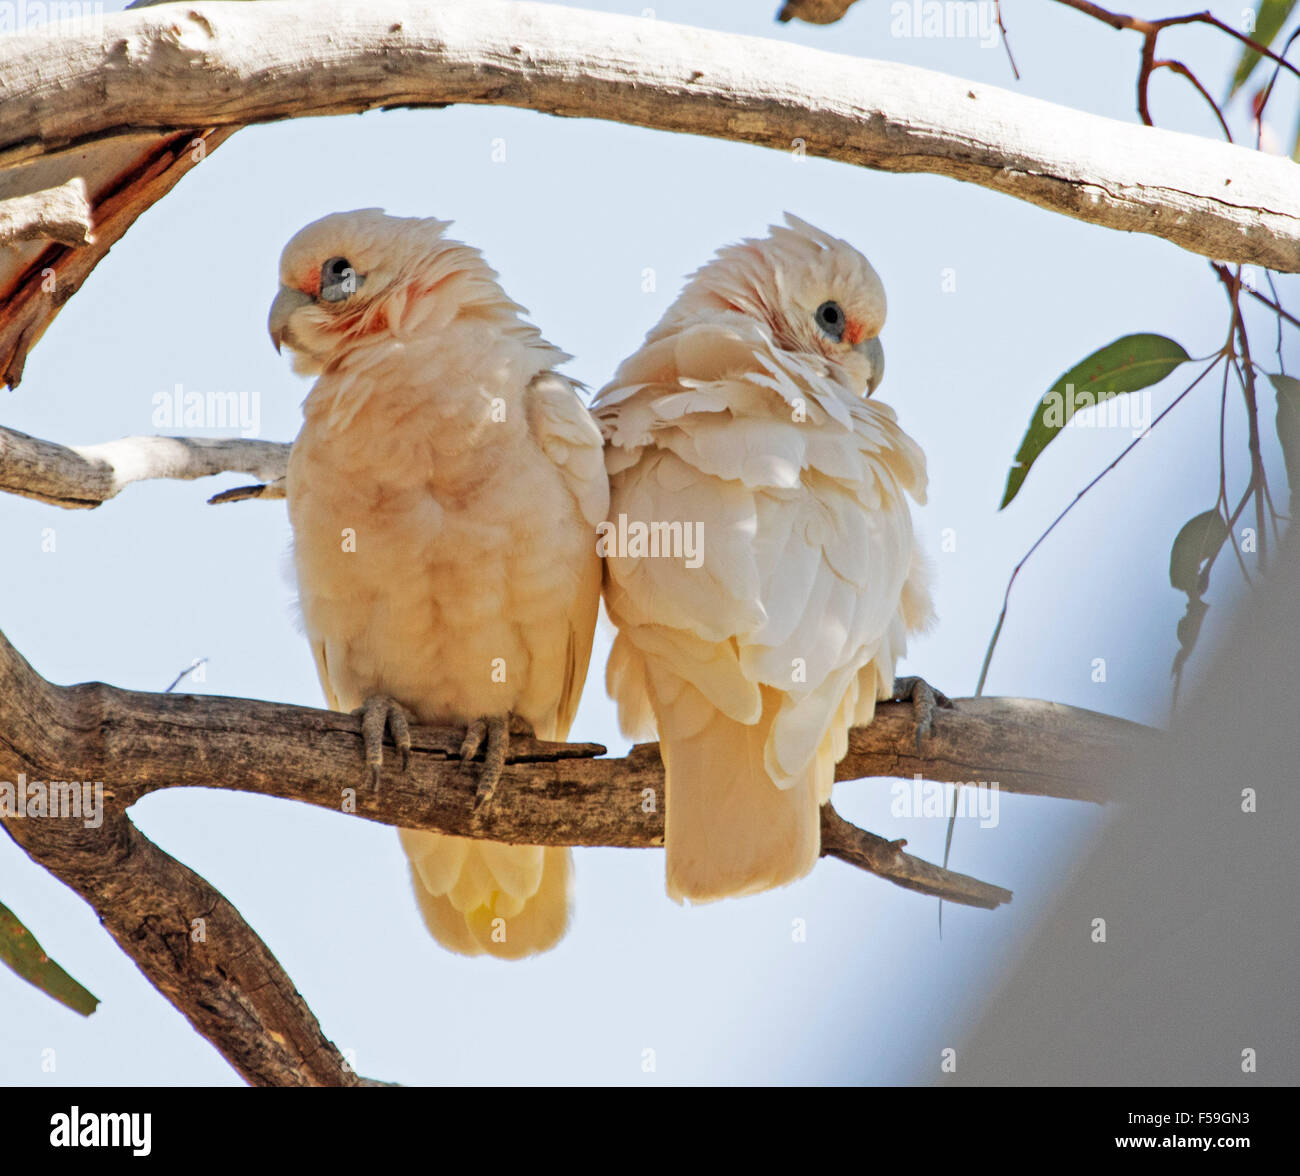 Pair of little corellas, Cacatua sanguinea, white cockatoos roosting on tree branch against blue sky in outback - Stock Image